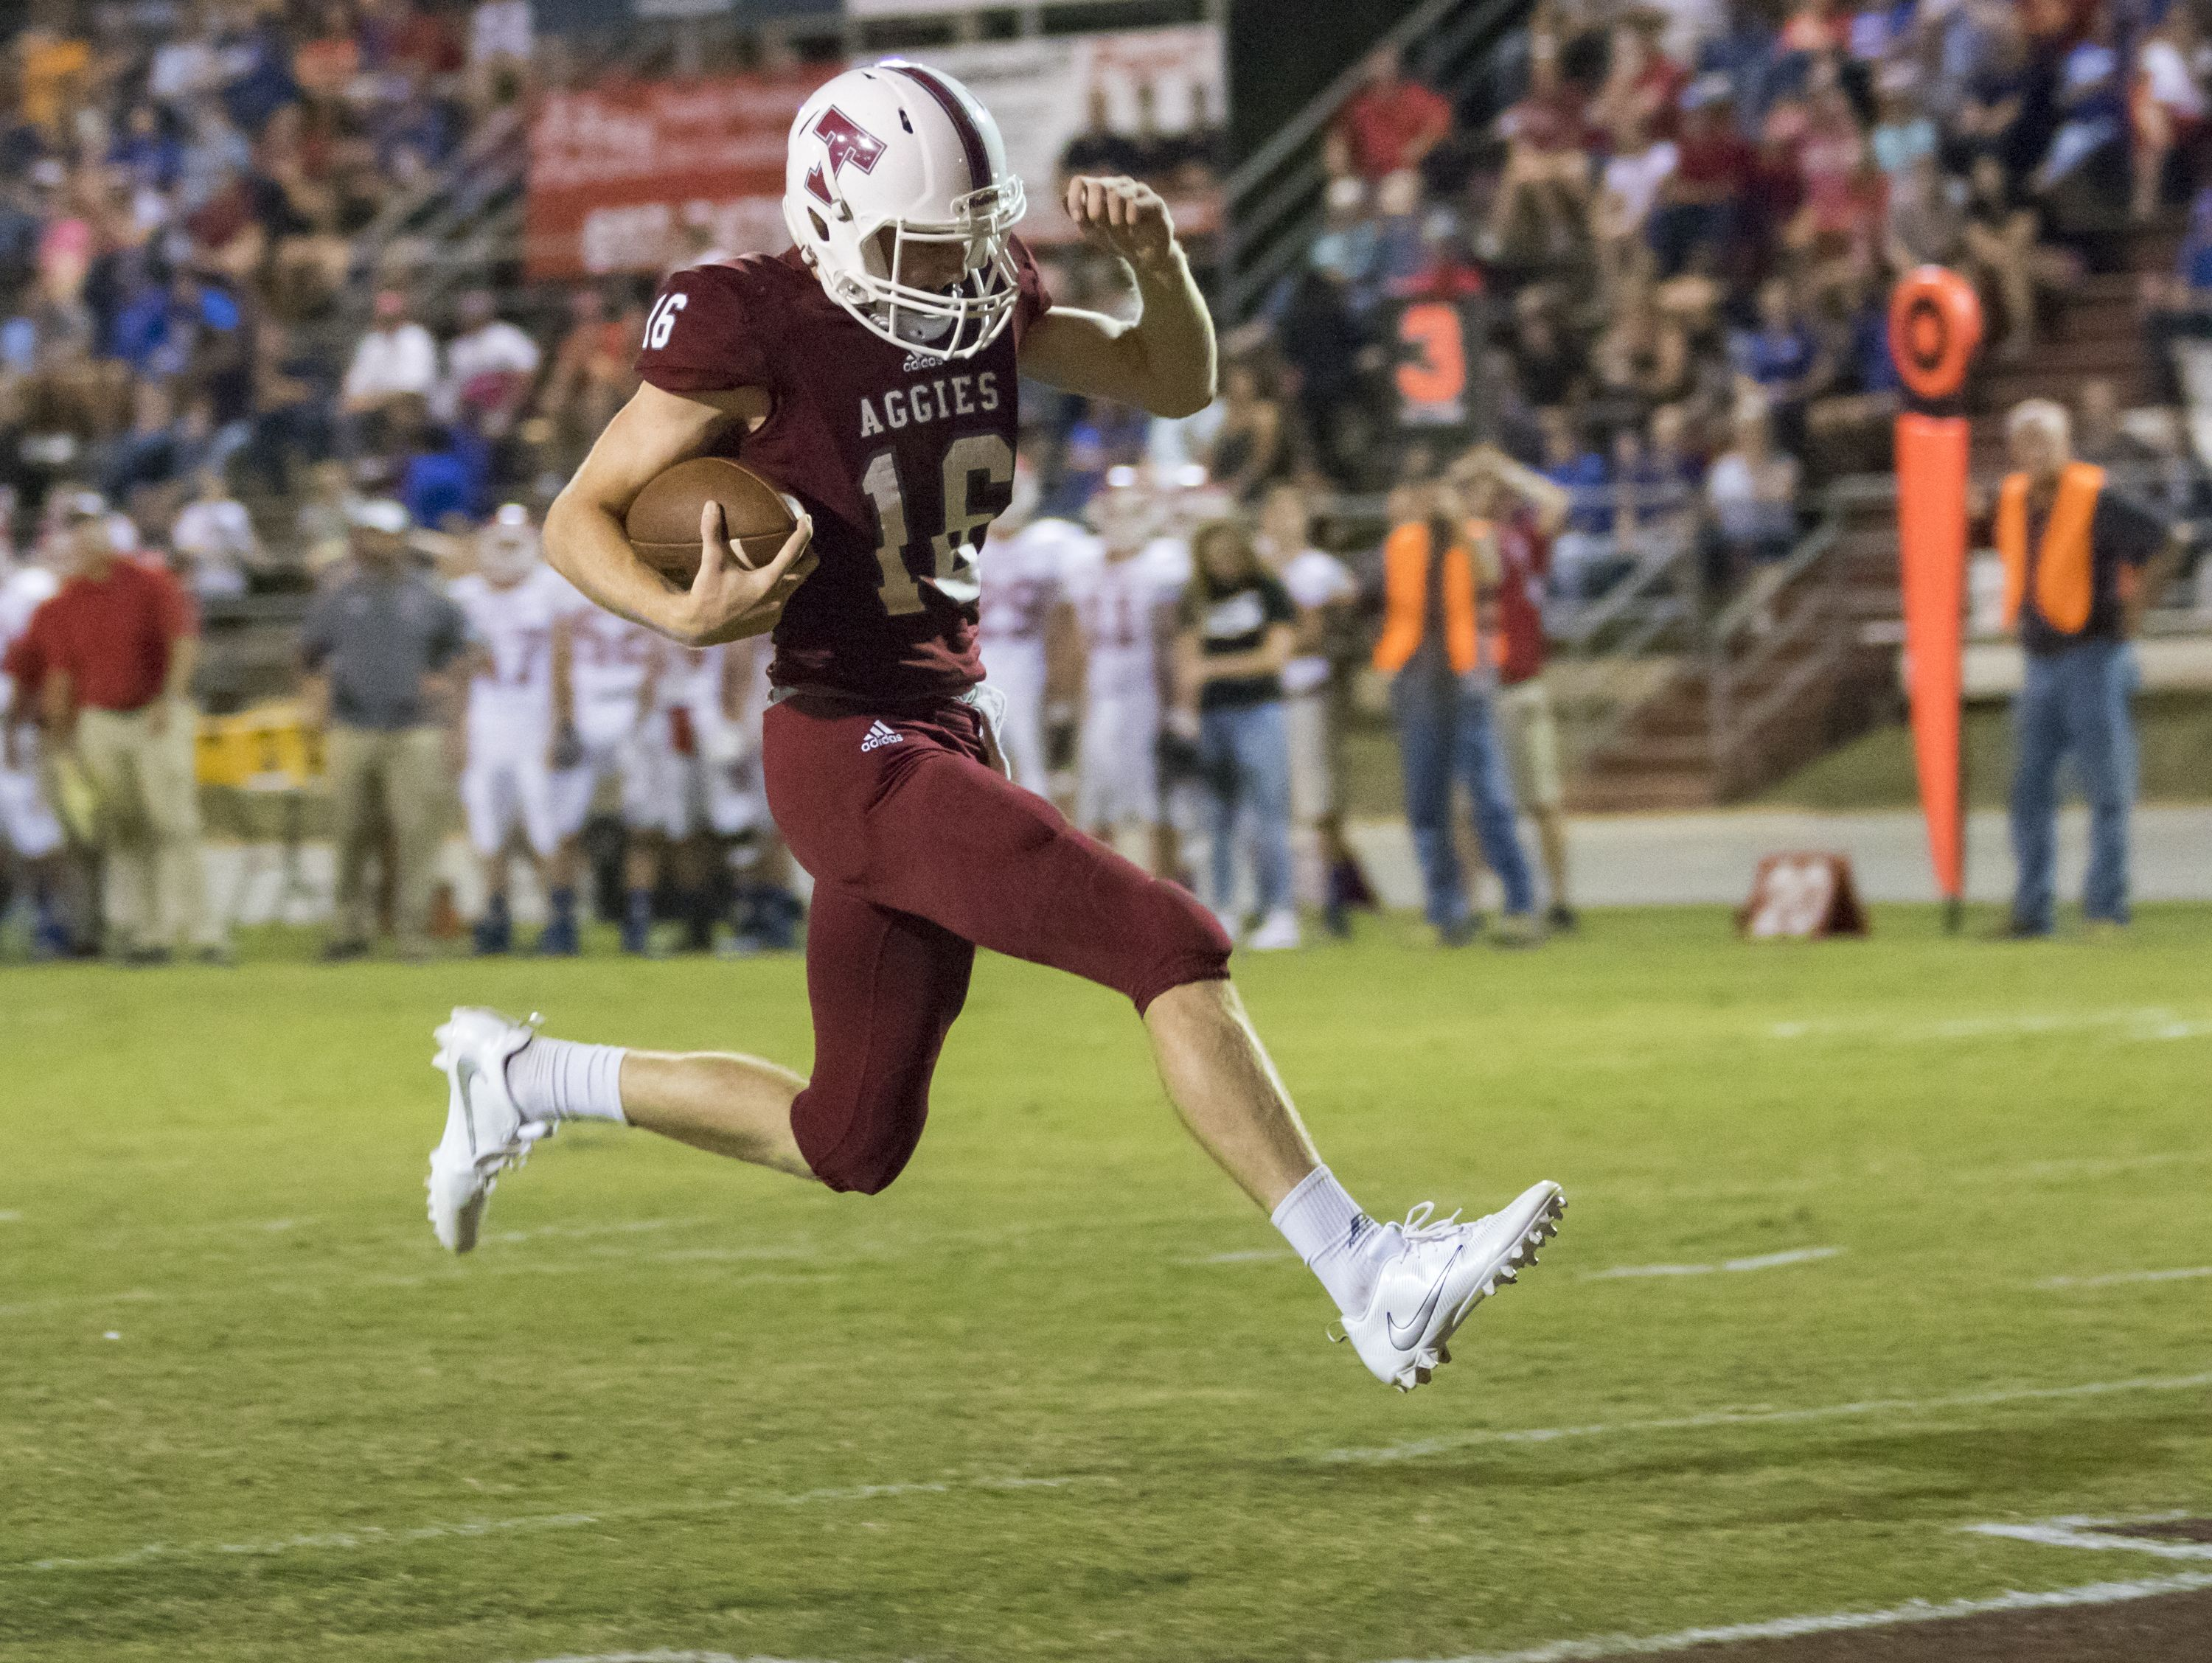 Quarterback Jack Henry (16) high steps into the endzone to go up 21 - 0 during the Pace vs Tate football game at Tate High School on Friday, October 7, 2016.